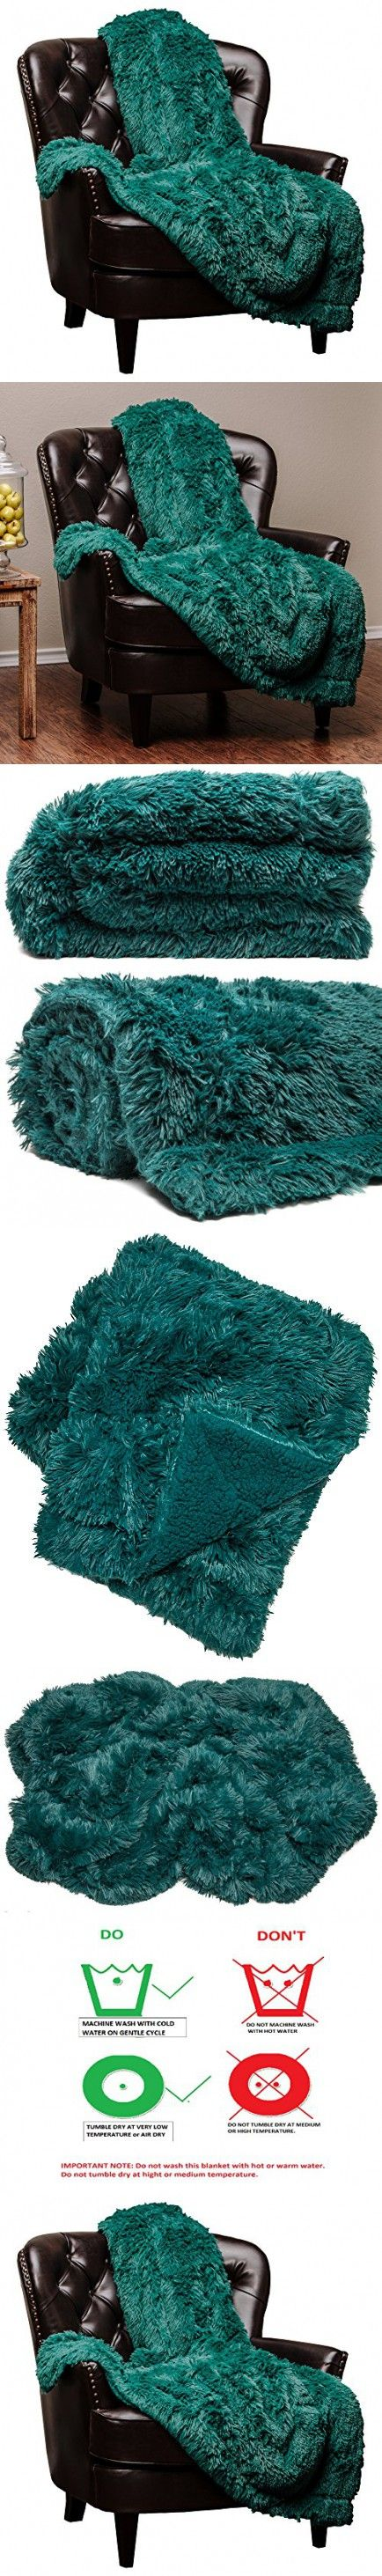 Chanasya Super Soft Long Shaggy Chic Fuzzy Fur Faux Fur Warm Elegant Cozy With Fluffy Sherpa Teal Throw Blanket - Solid Shaggy Teal